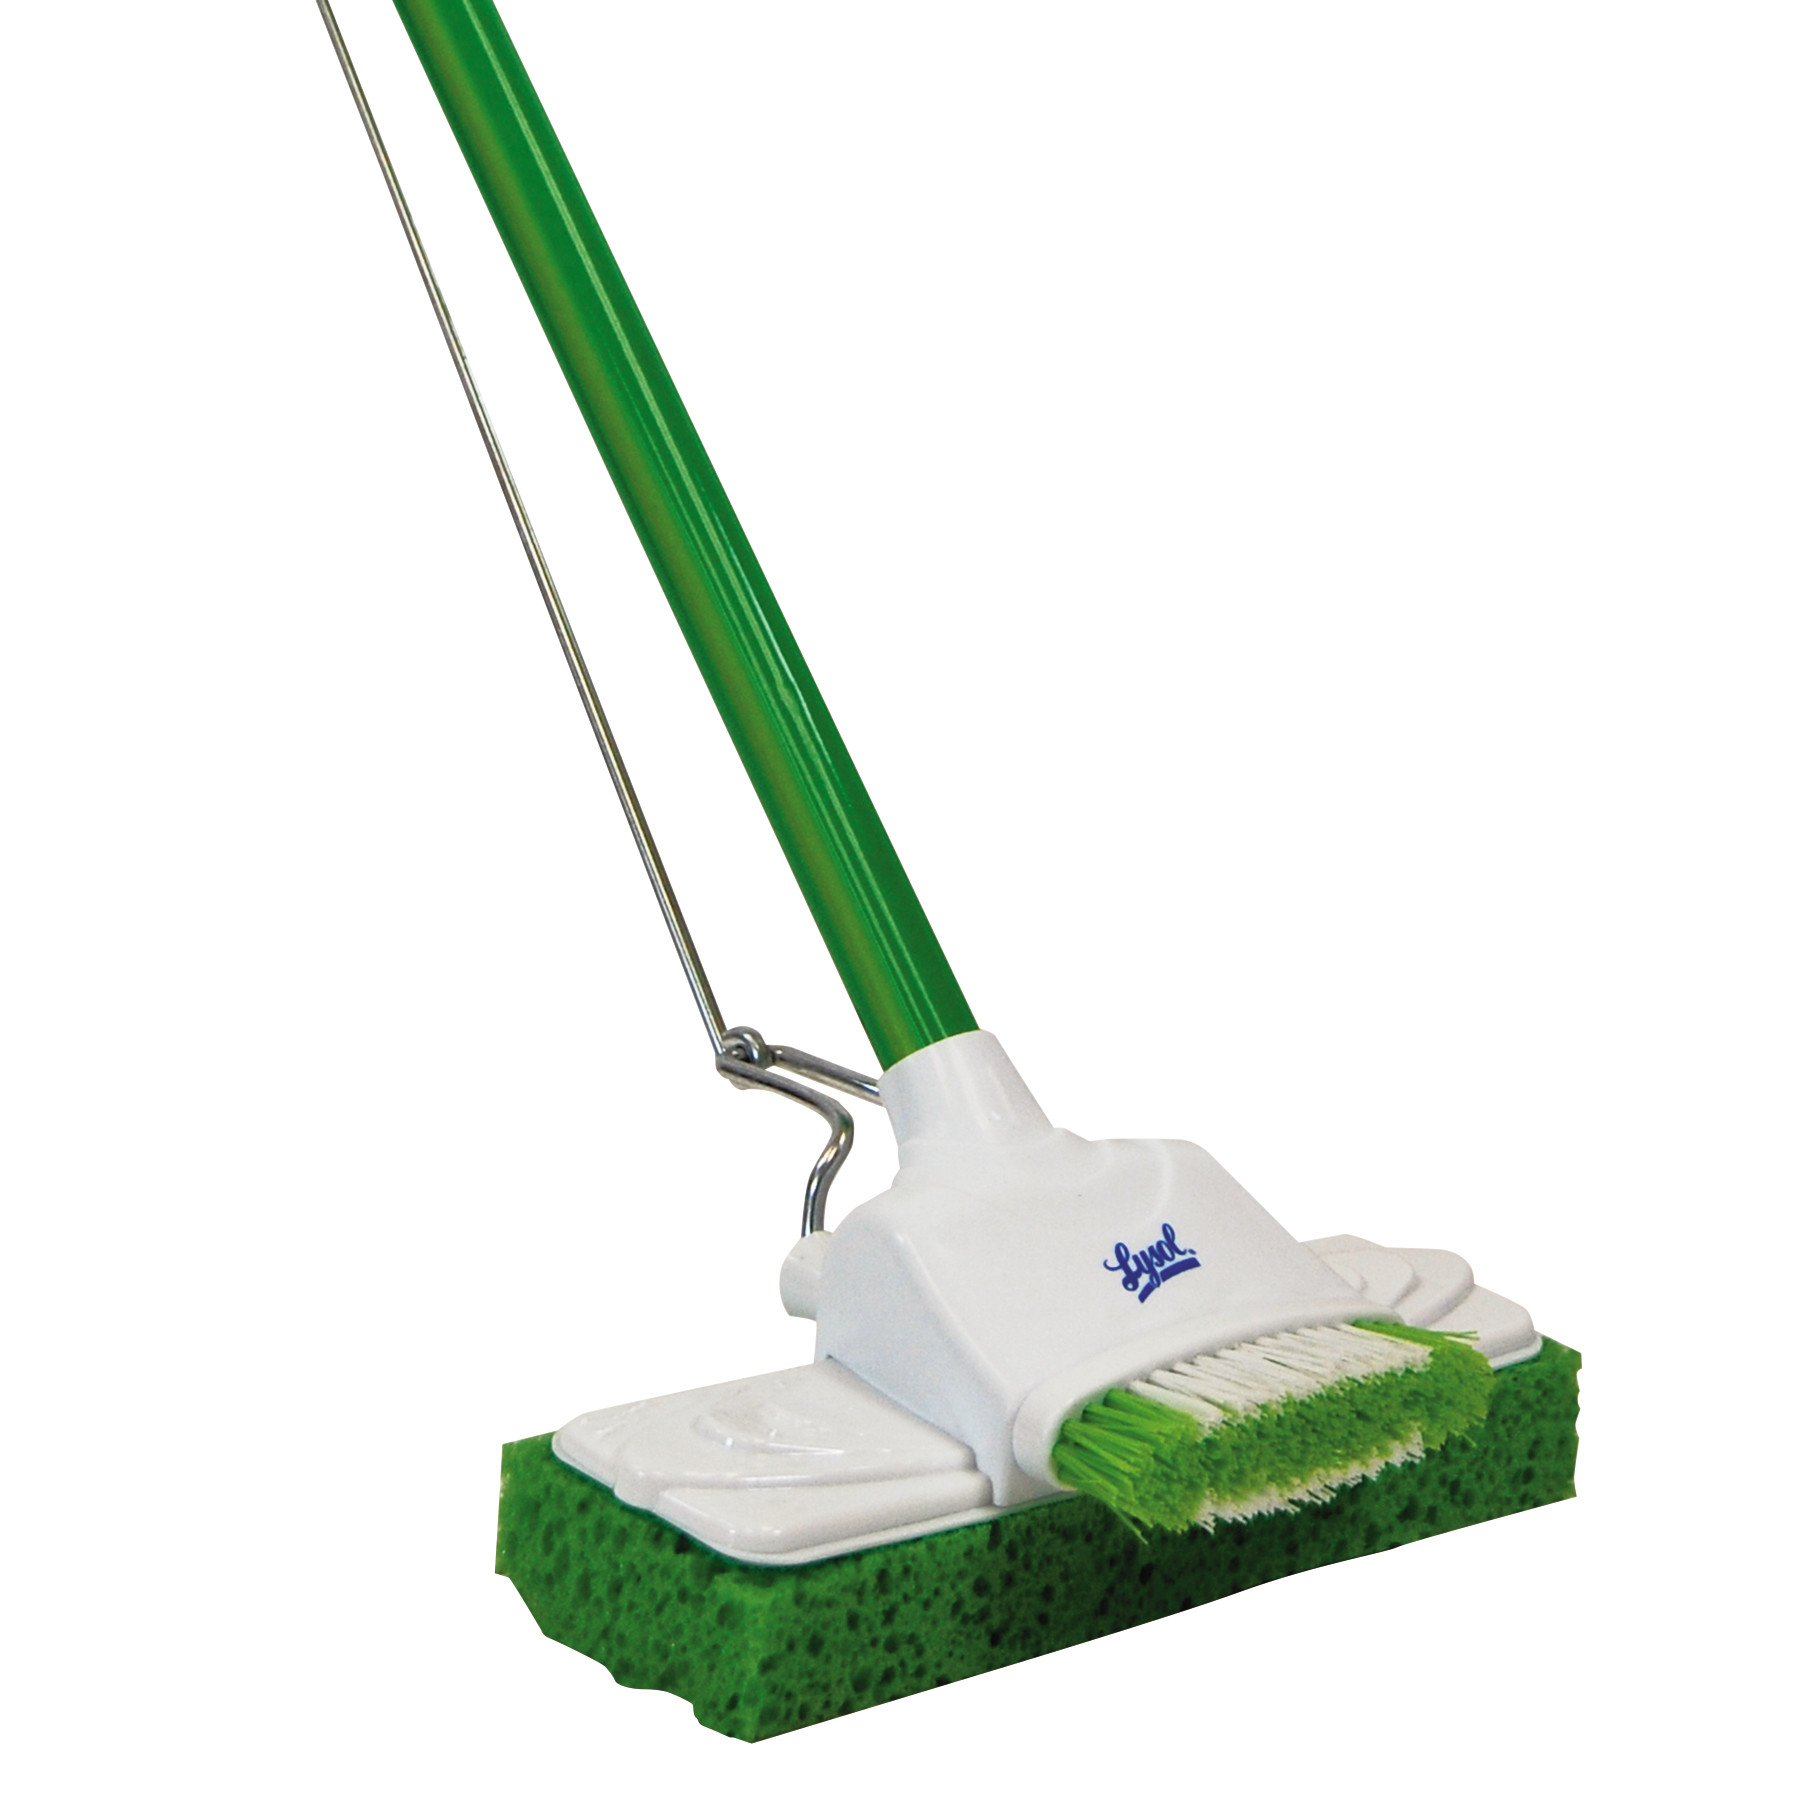 "LYSOL Brand Sponge Mop, 9"", 48"" Steel Handle"